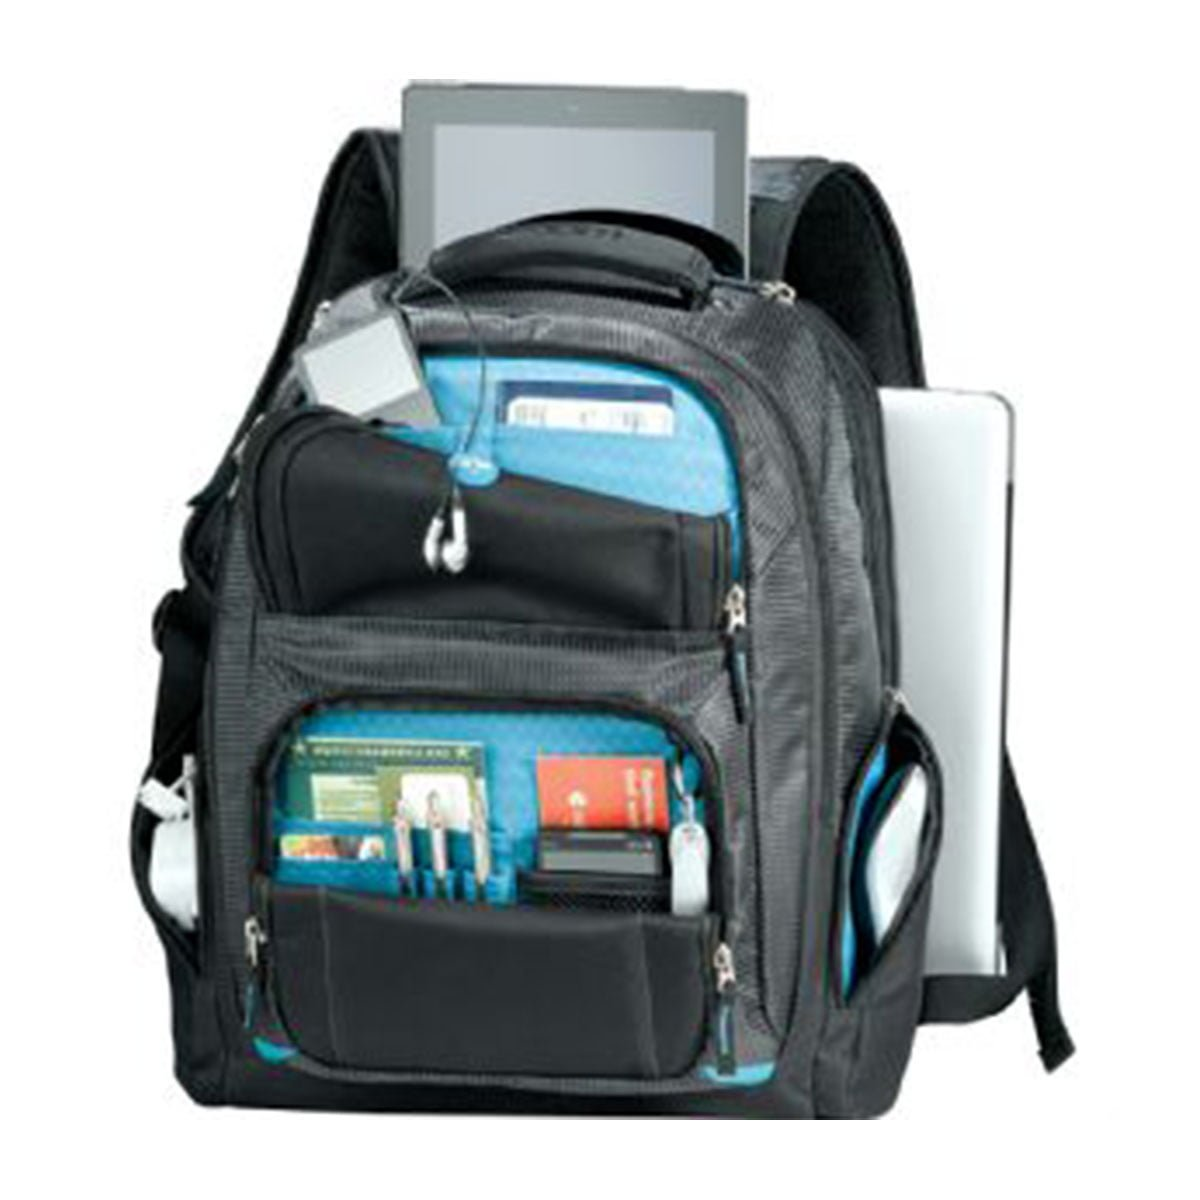 Zoom® Checkpoint-Friendly Compu-Backpack-Black with Blue detail